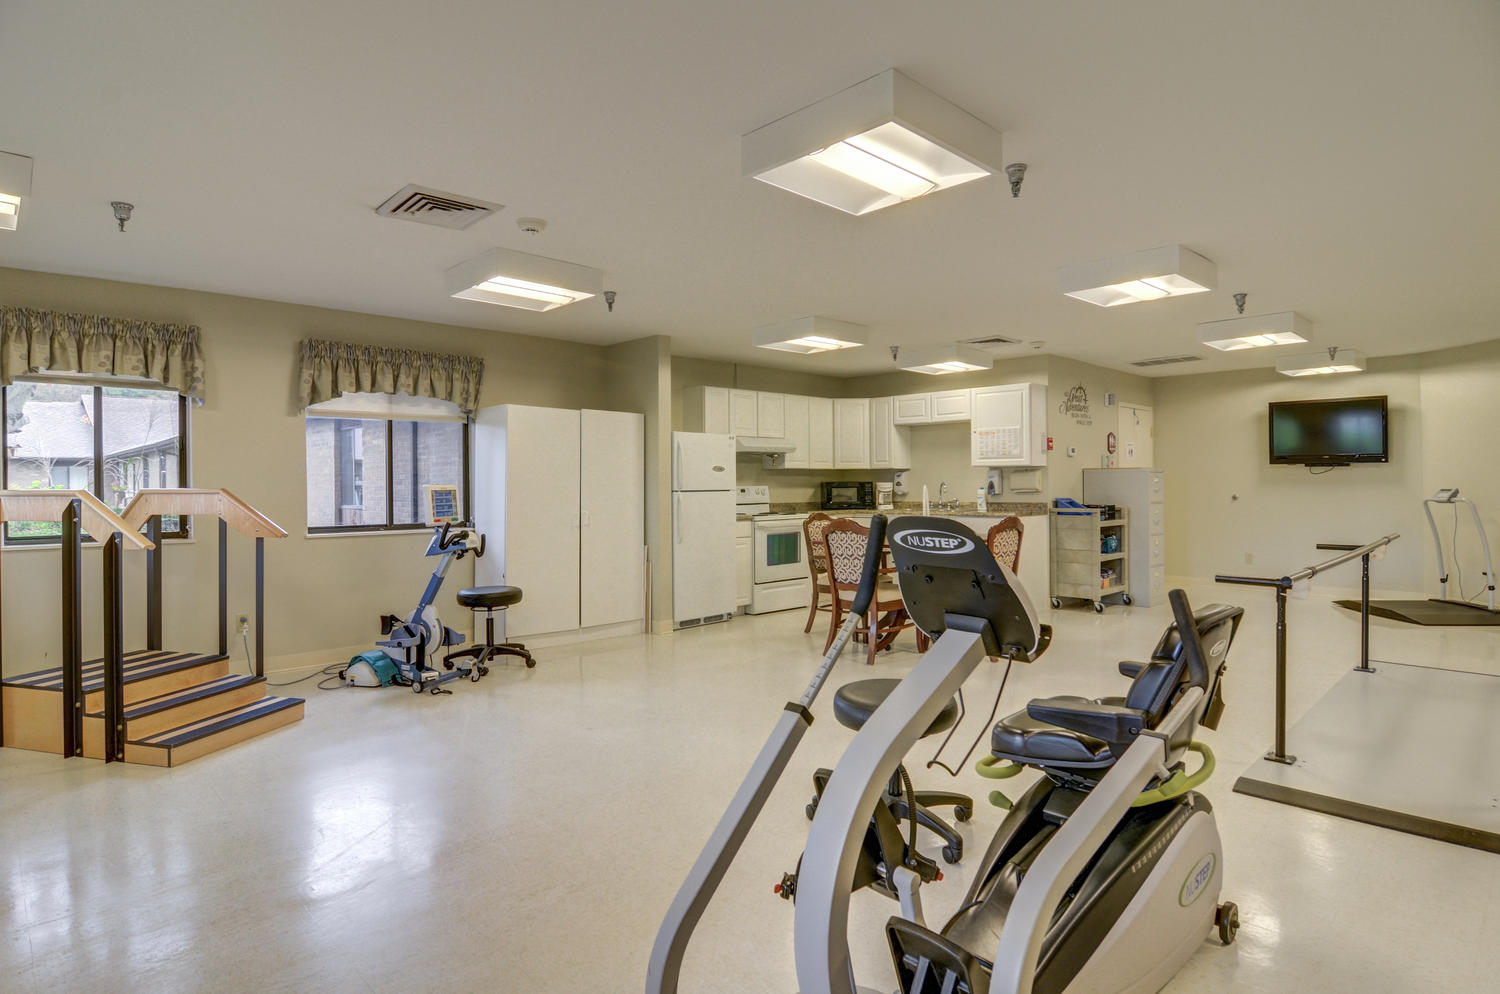 Stonerise Belmont Physical Therapy equipment with kitchen area and TV in the background